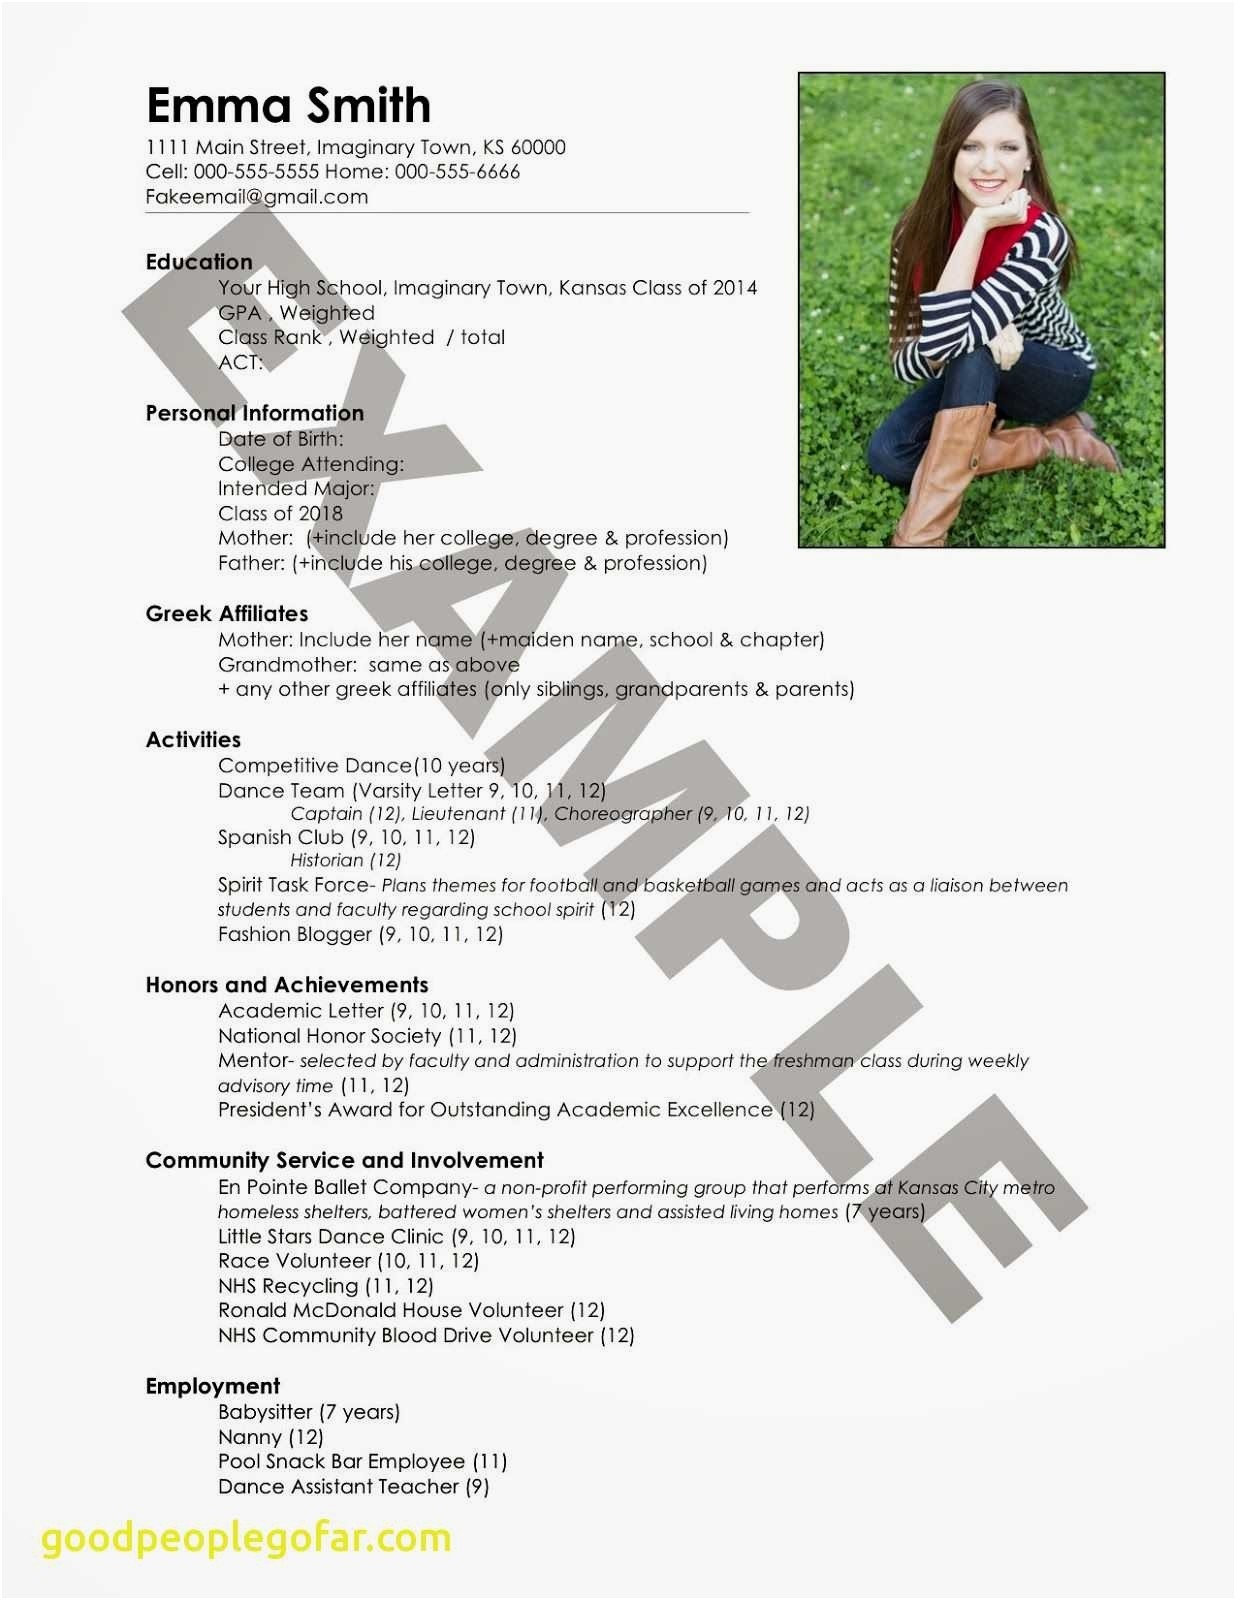 Honors and Awards Resume - Awards Resume Best Doctor Resume Beautiful American Resume